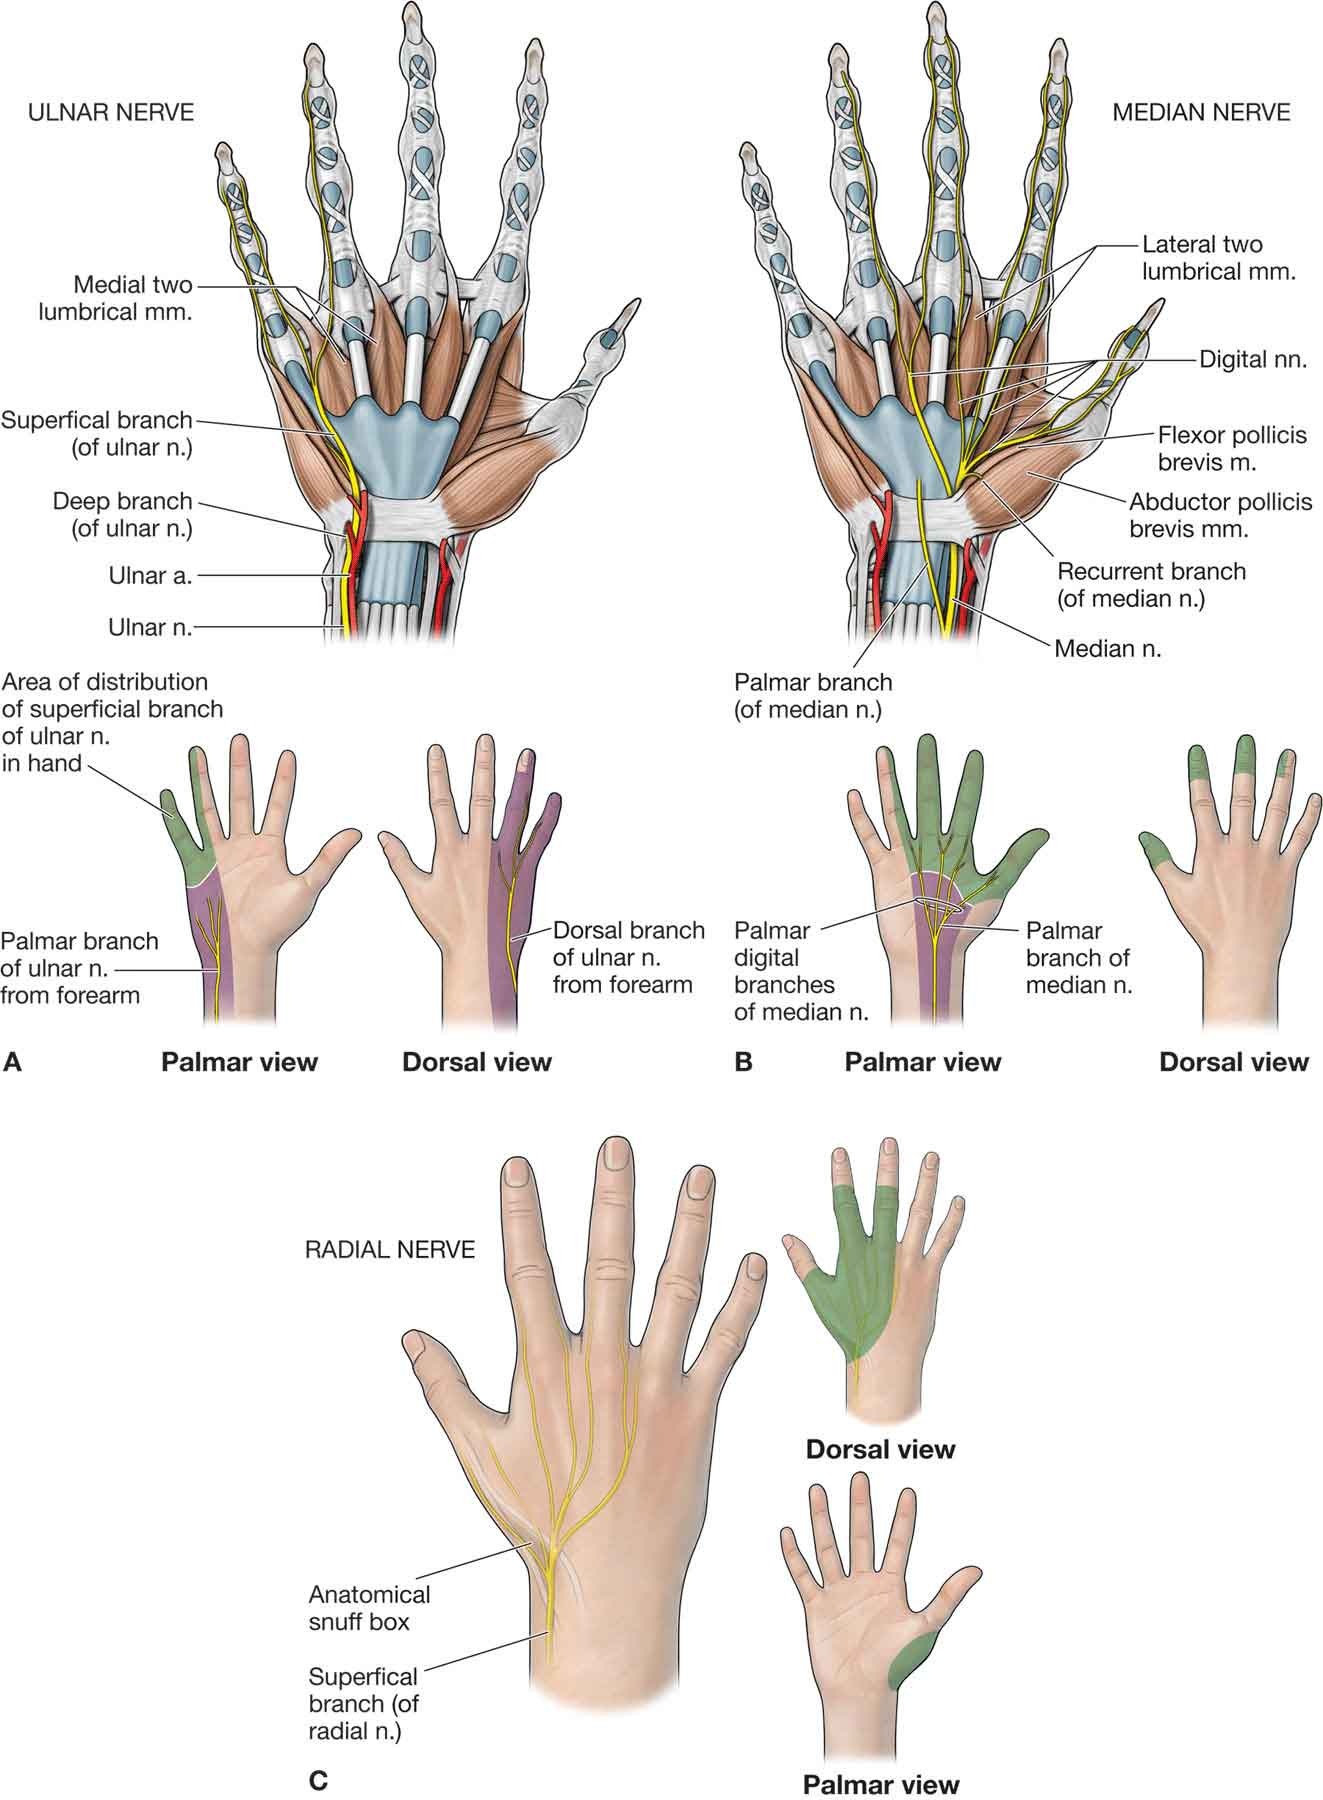 ulnar nerve diagram ford model t ignition switch wiring the forearm wrist and hand musculoskeletal key